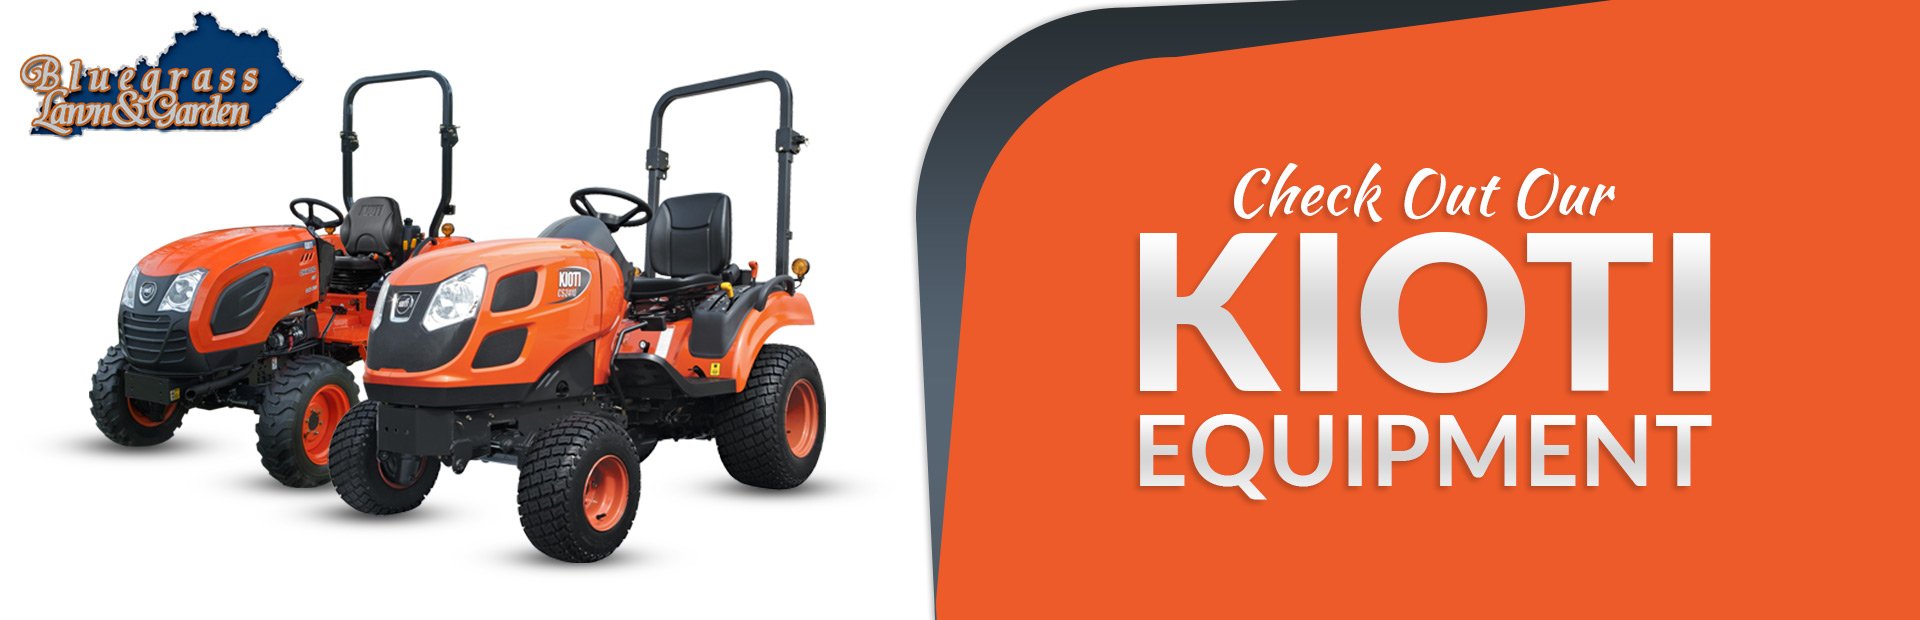 Check out our KIOTI equipment!